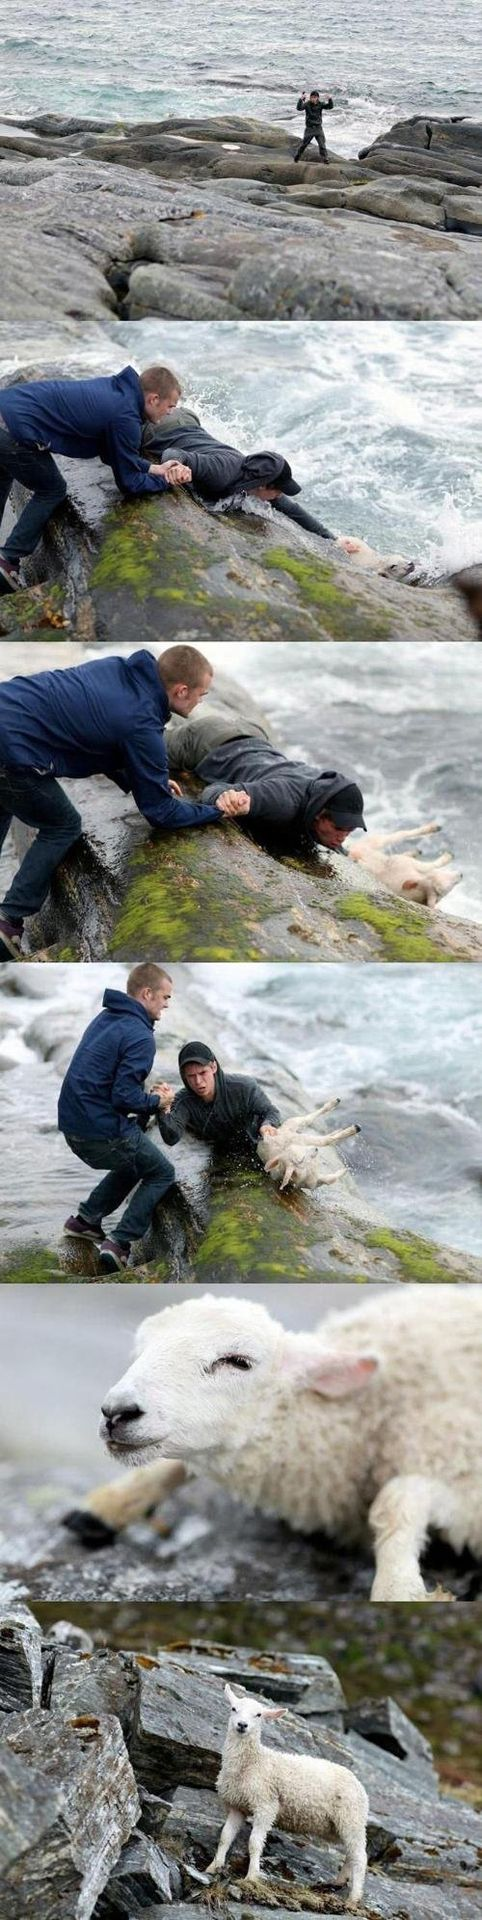 Two Norwegian guys rescuing a sheep from the ocean….